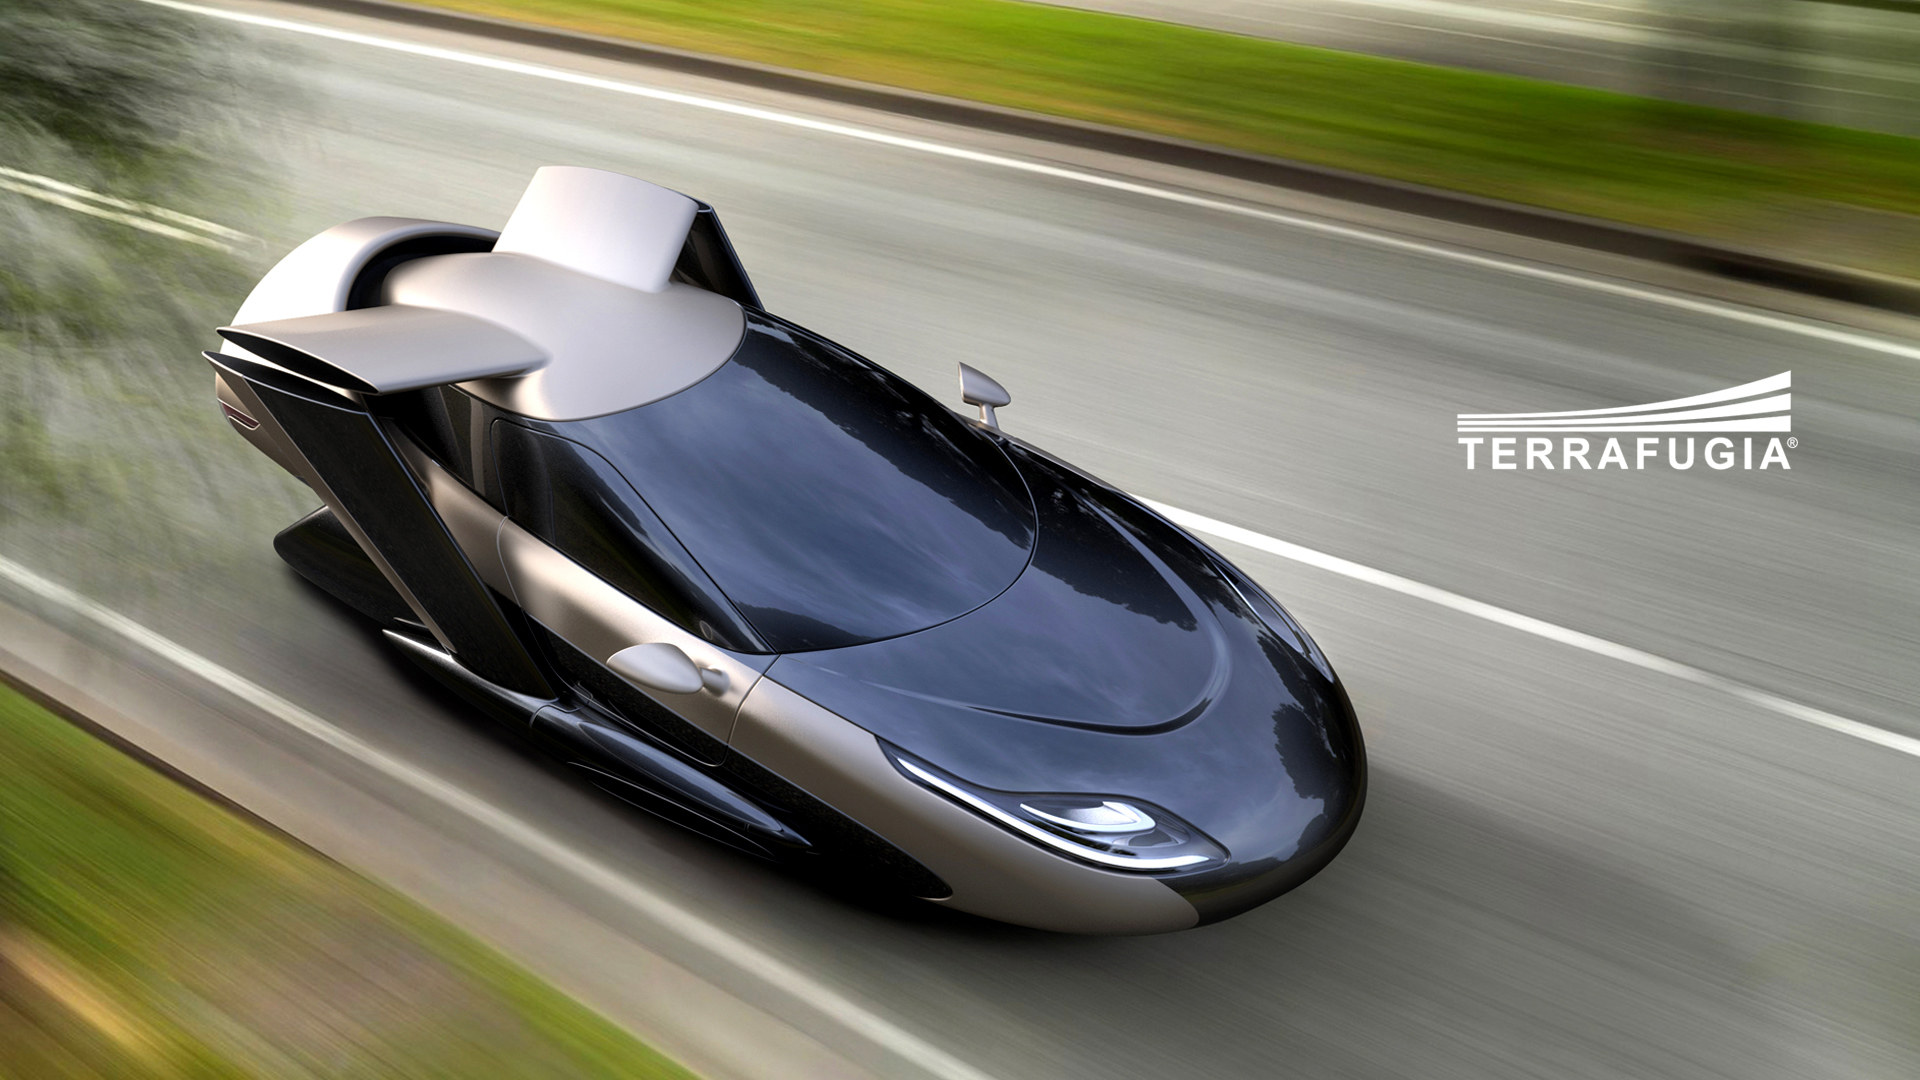 Images Of The New Flying Car